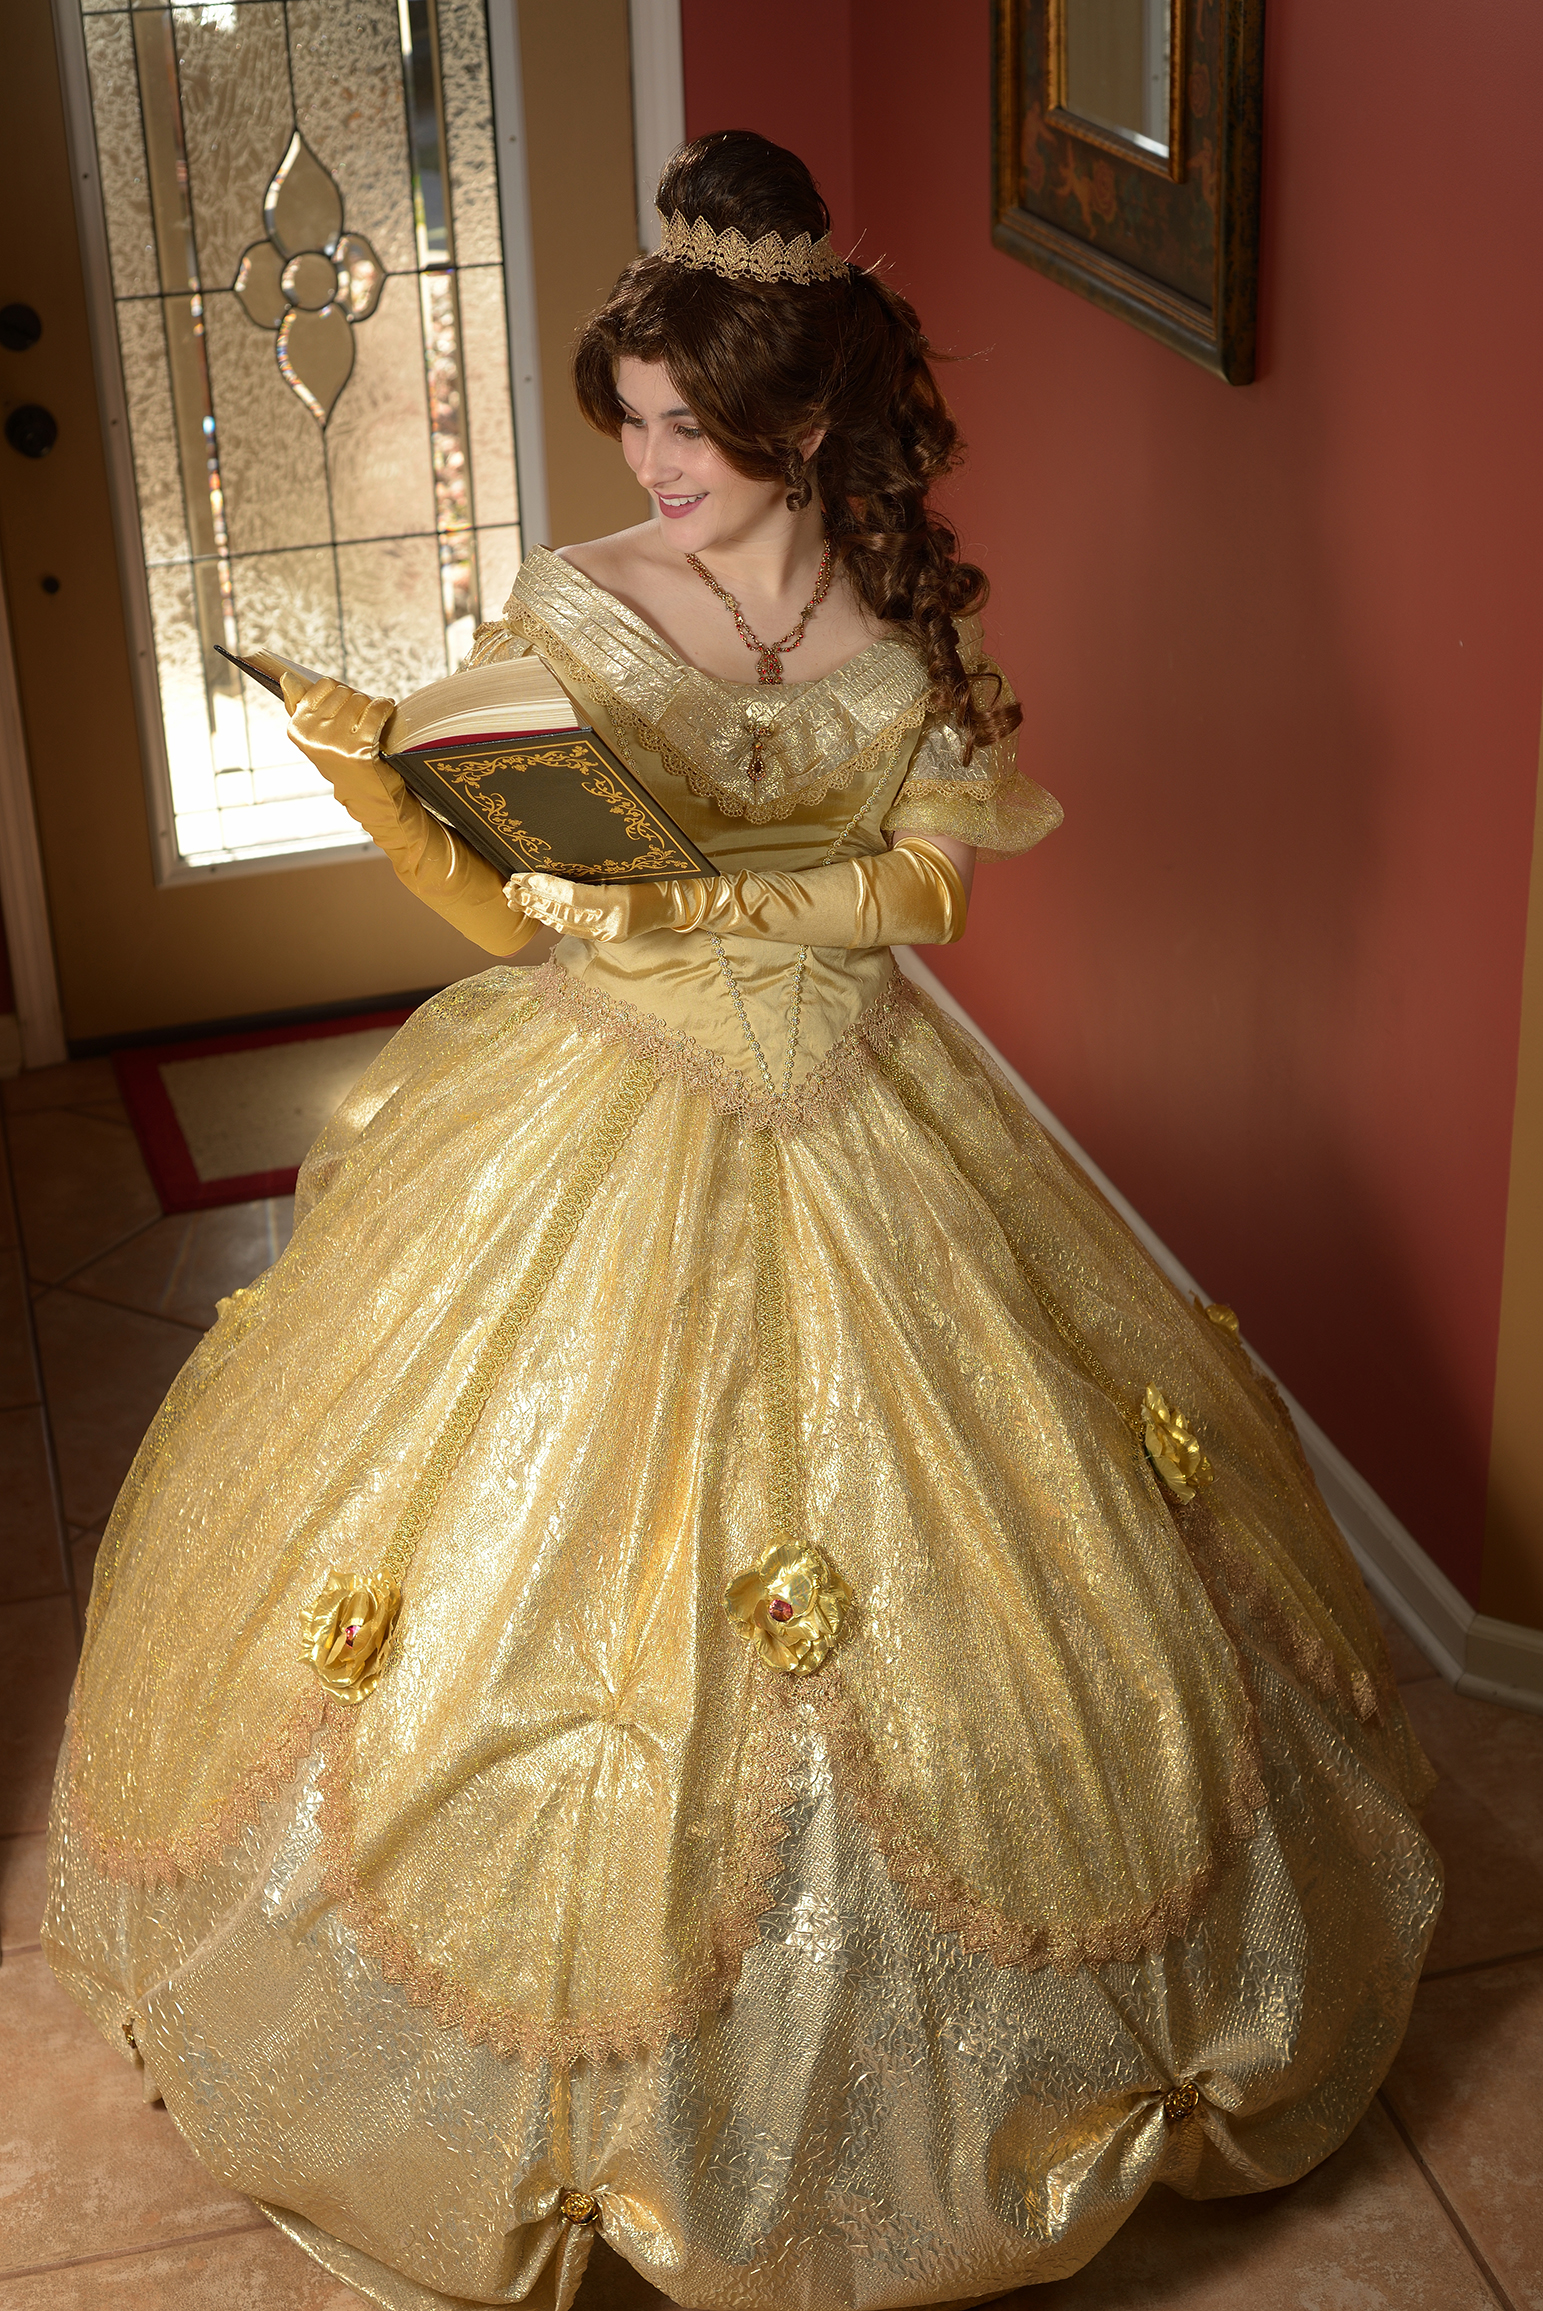 Belle Fairy Tale Character